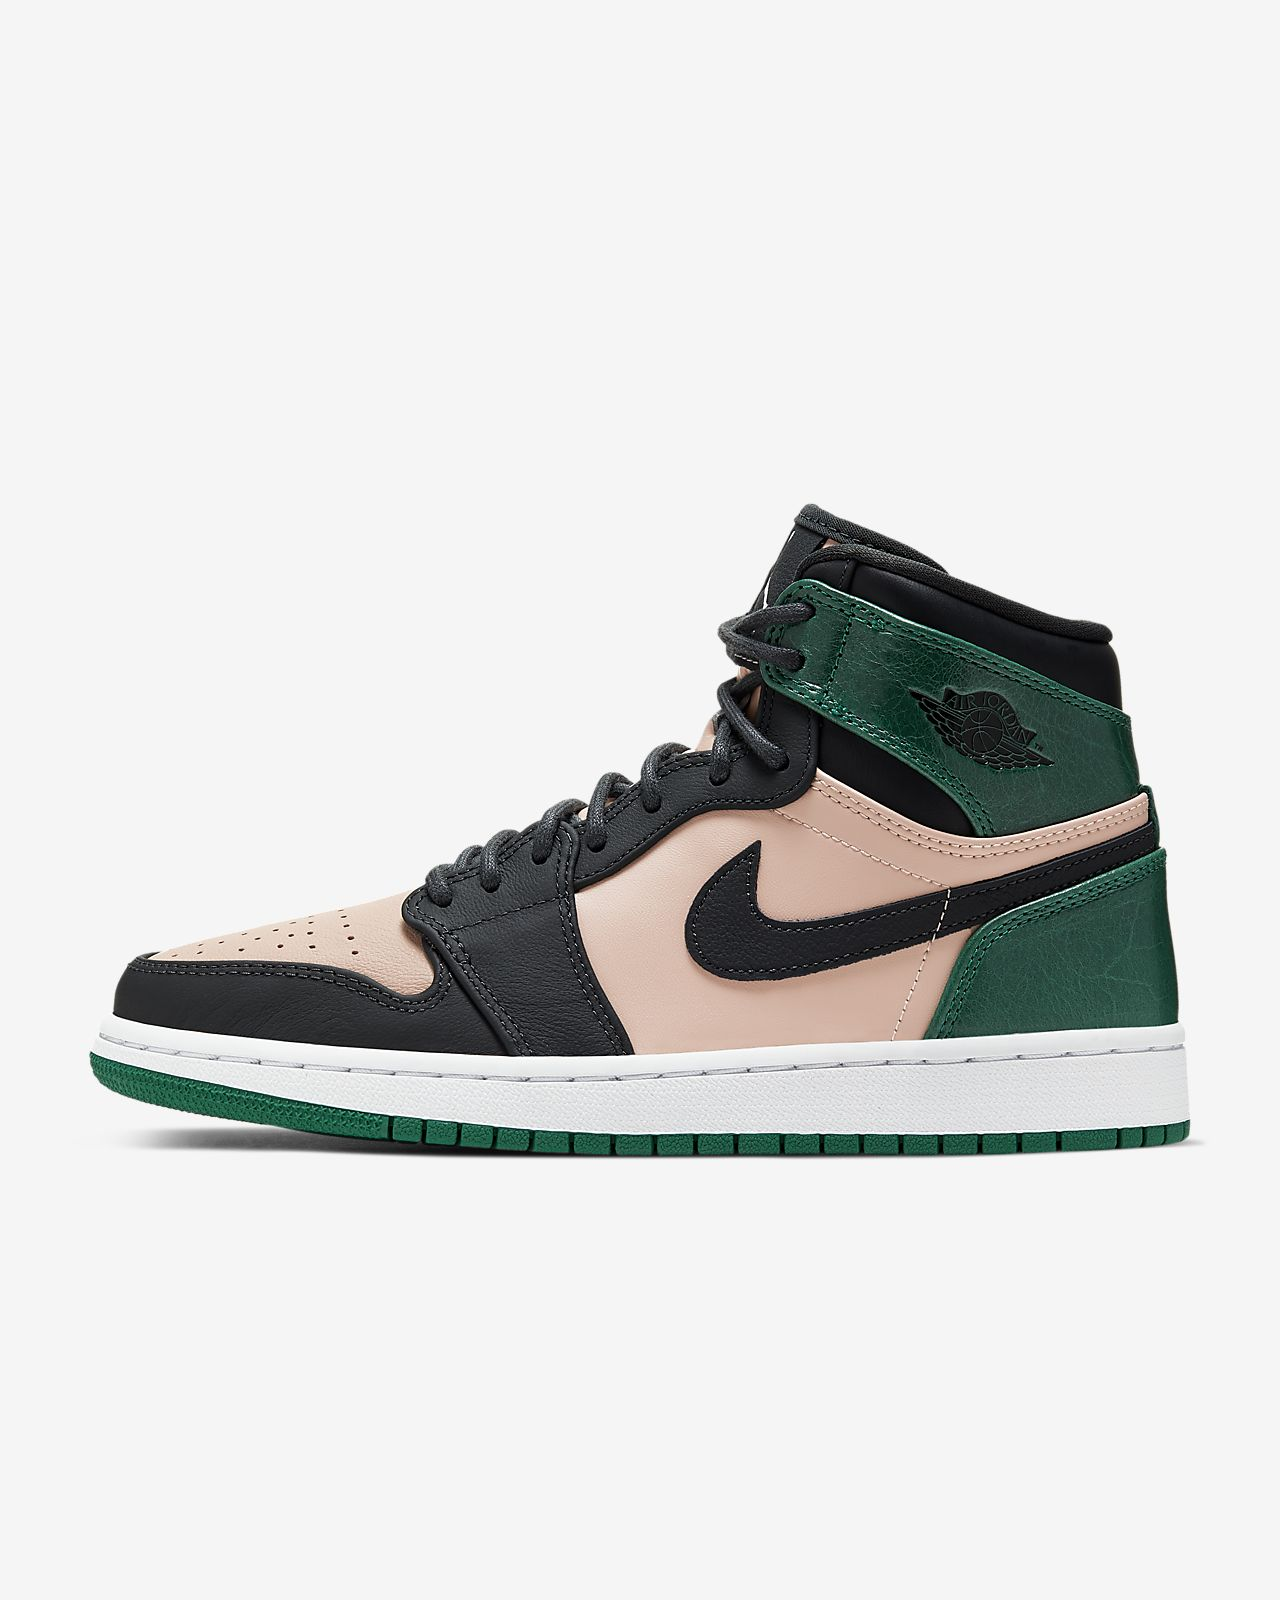 best authentic ae1b4 c0d31 Nike Air Jordan 1 Retro High Premium